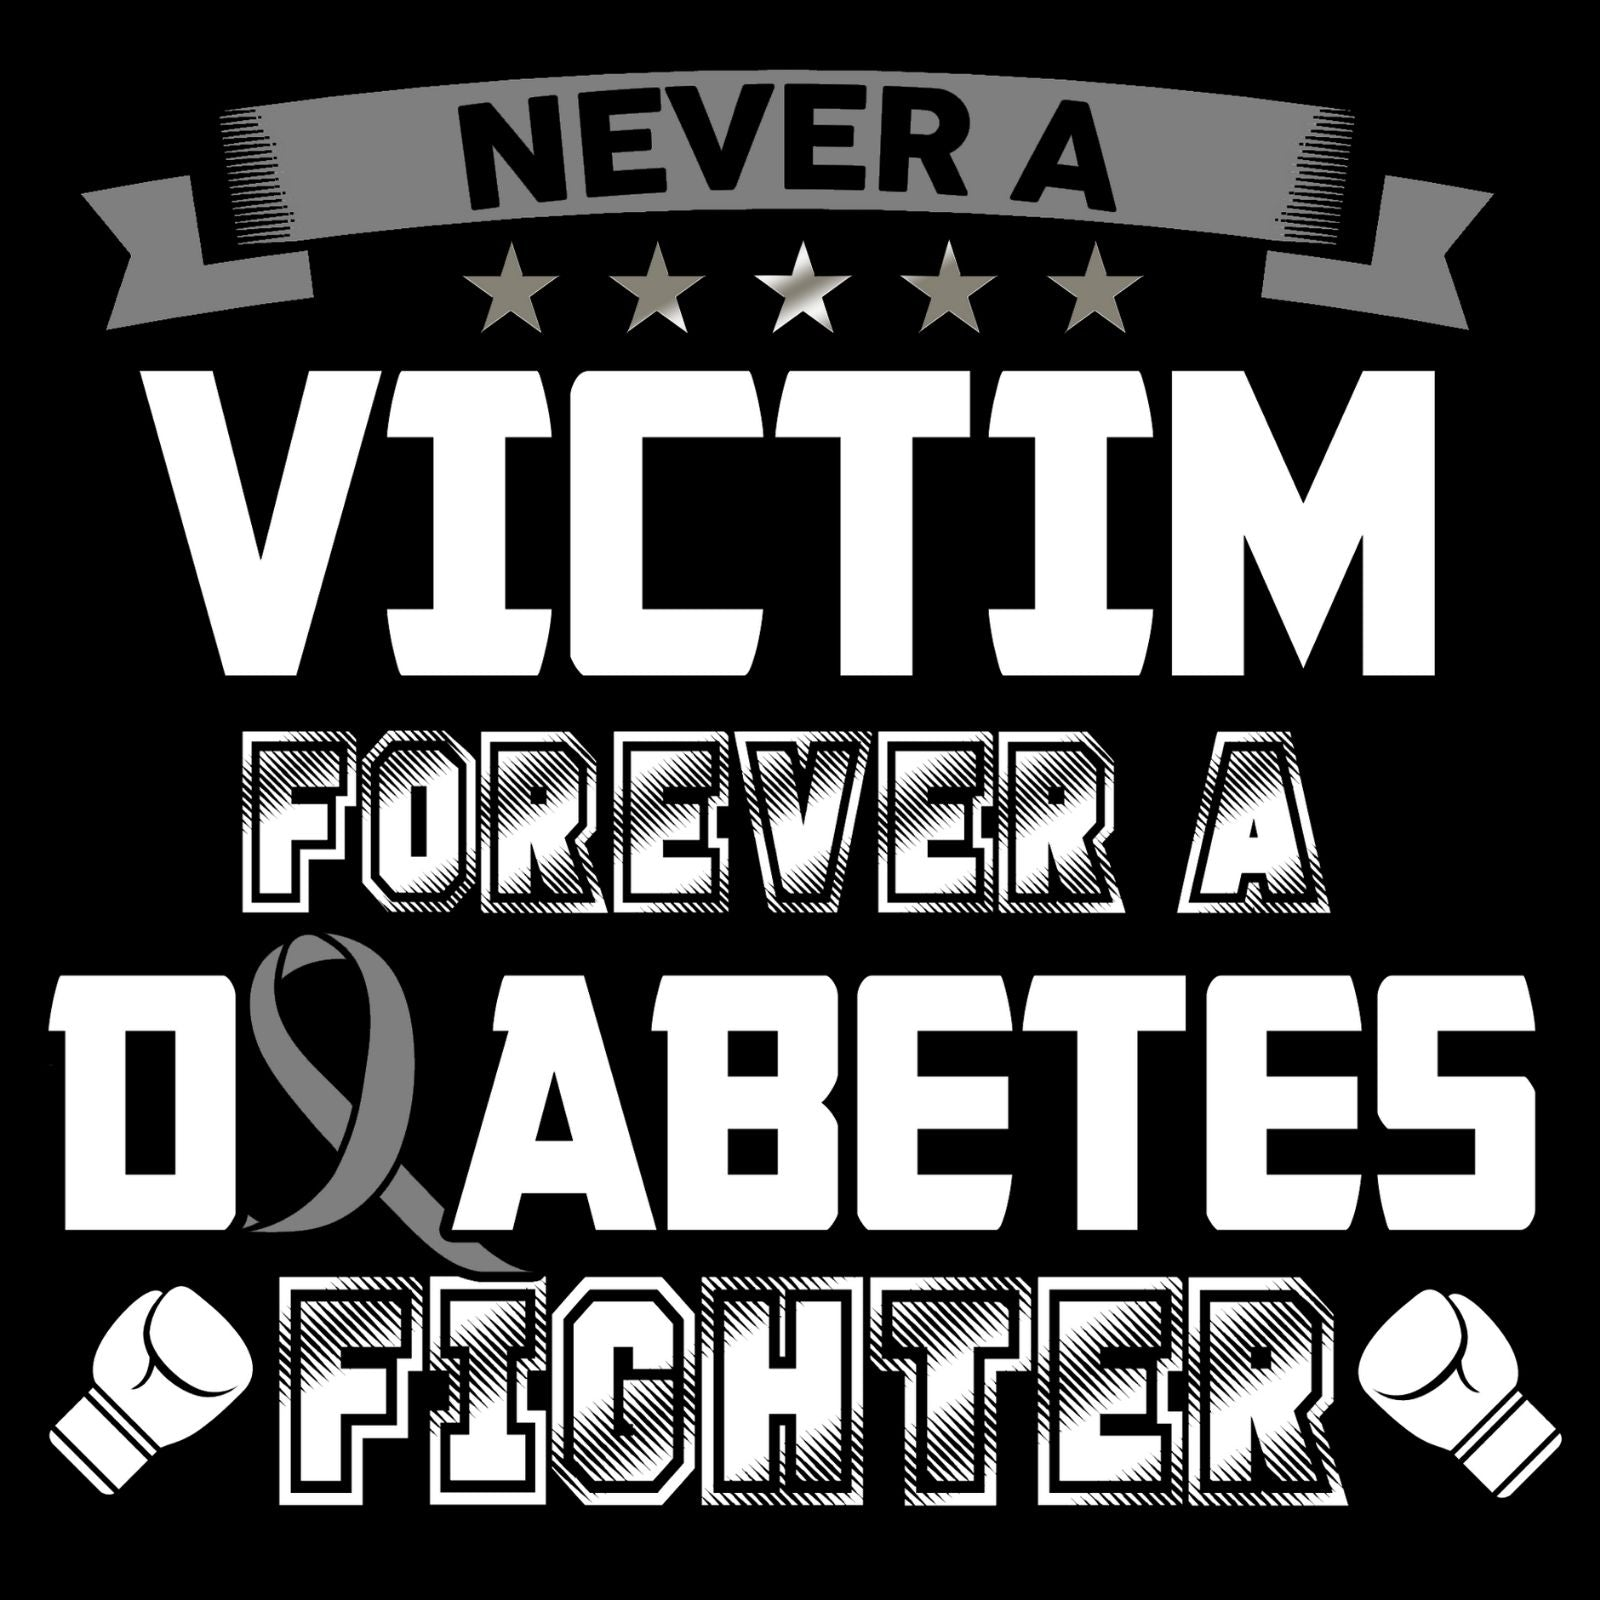 Never A Victim Forever A Diabetes Fighter 2 - Bastard Graphics